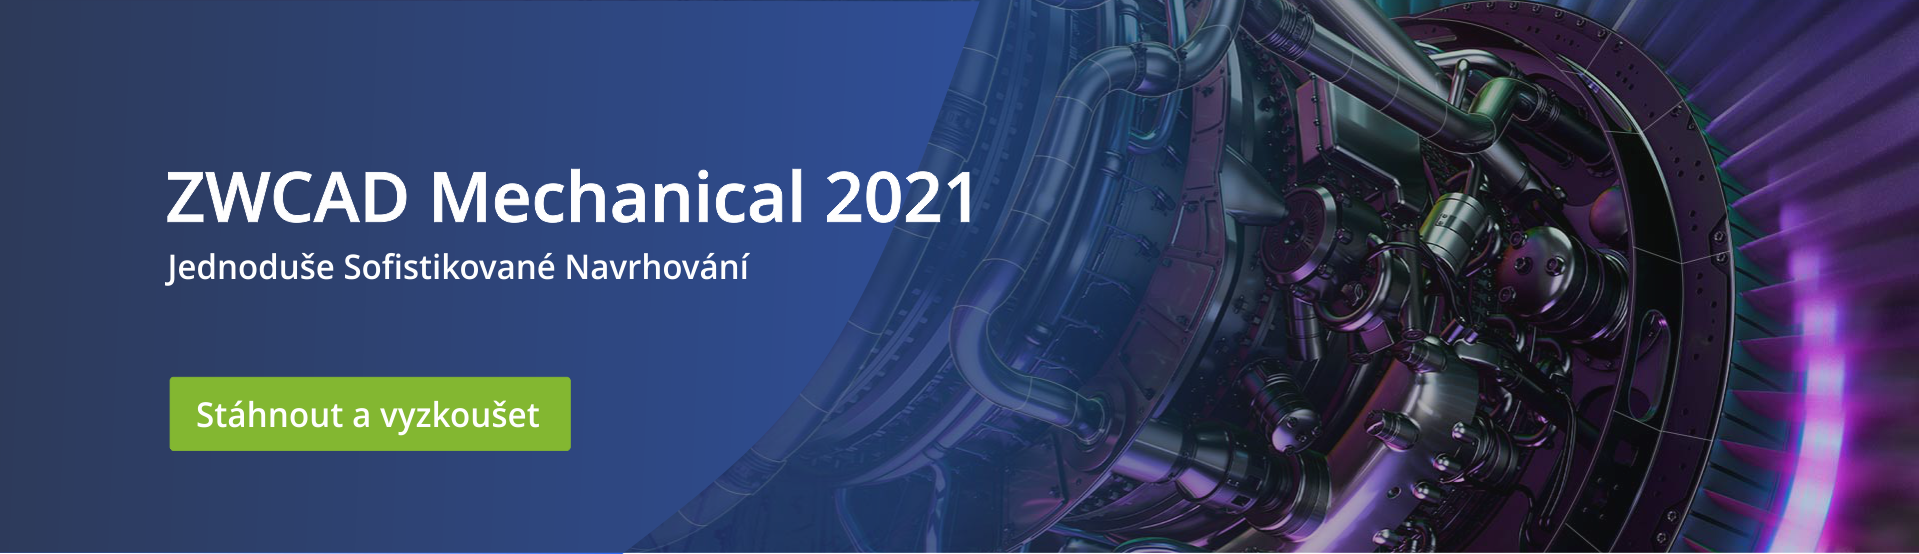 ZWCAD Mechanical 2021